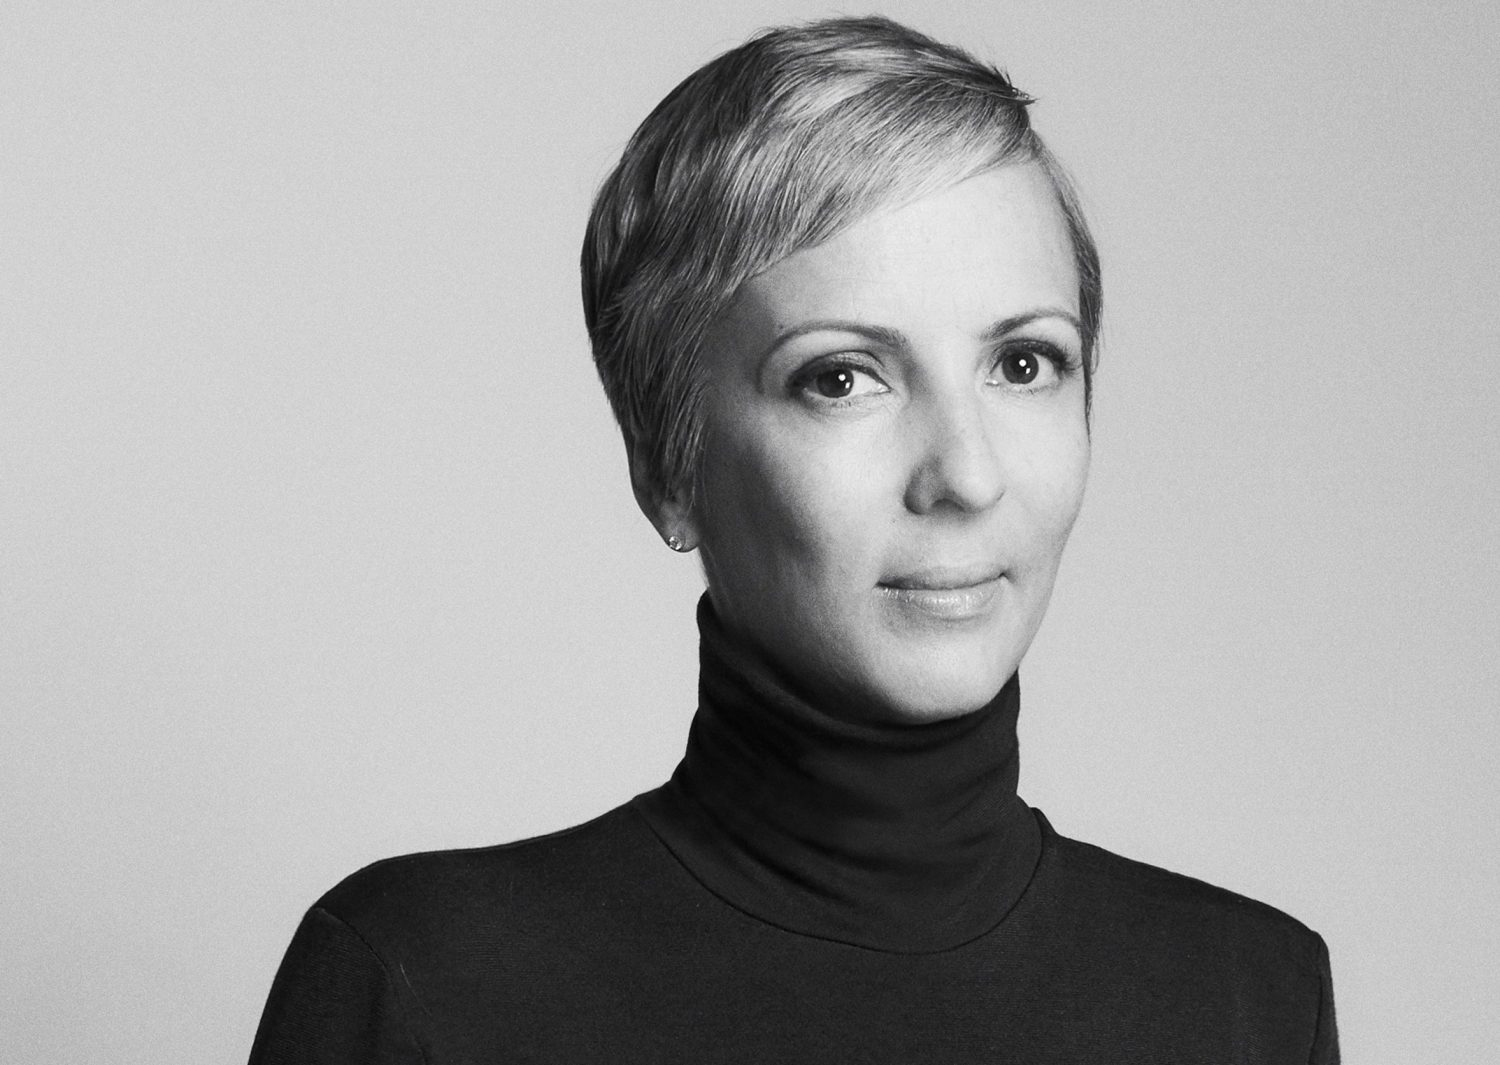 Hearst Magazines Uk Appoints Anne Marie Curtis As New